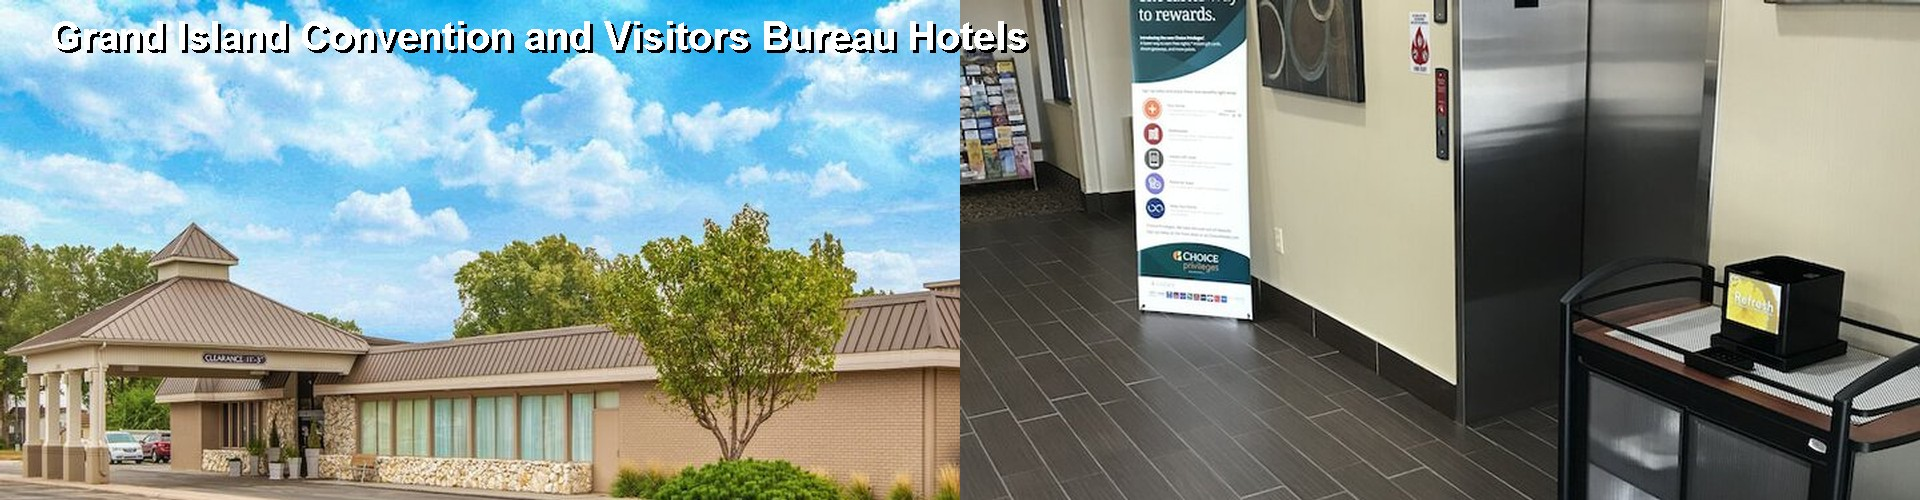 5 Best Hotels near Grand Island Convention and Visitors Bureau